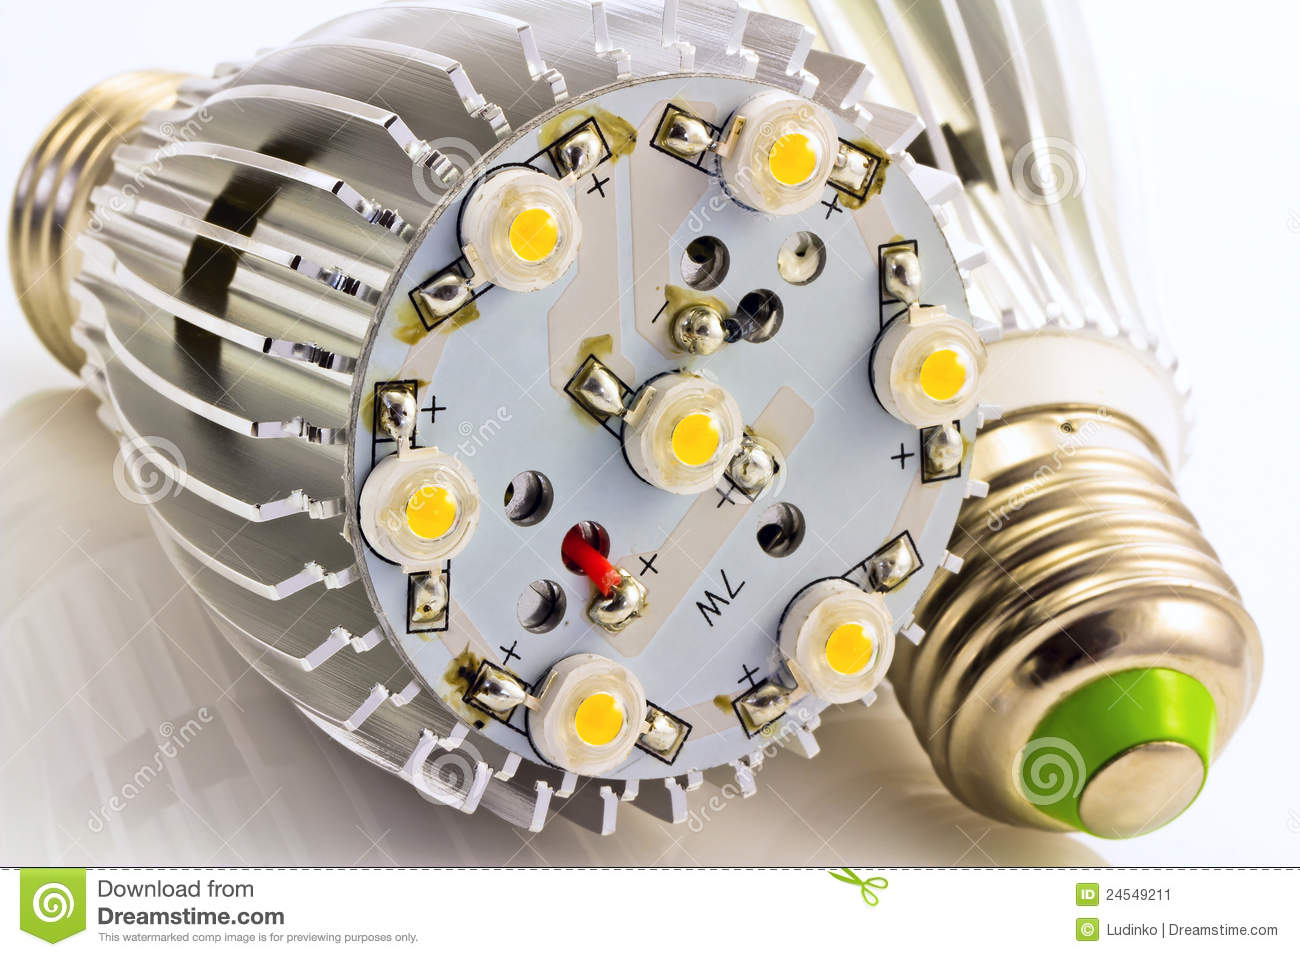 Led Light Bulbs E27 With 1 Watts Smd Chips Stock Image